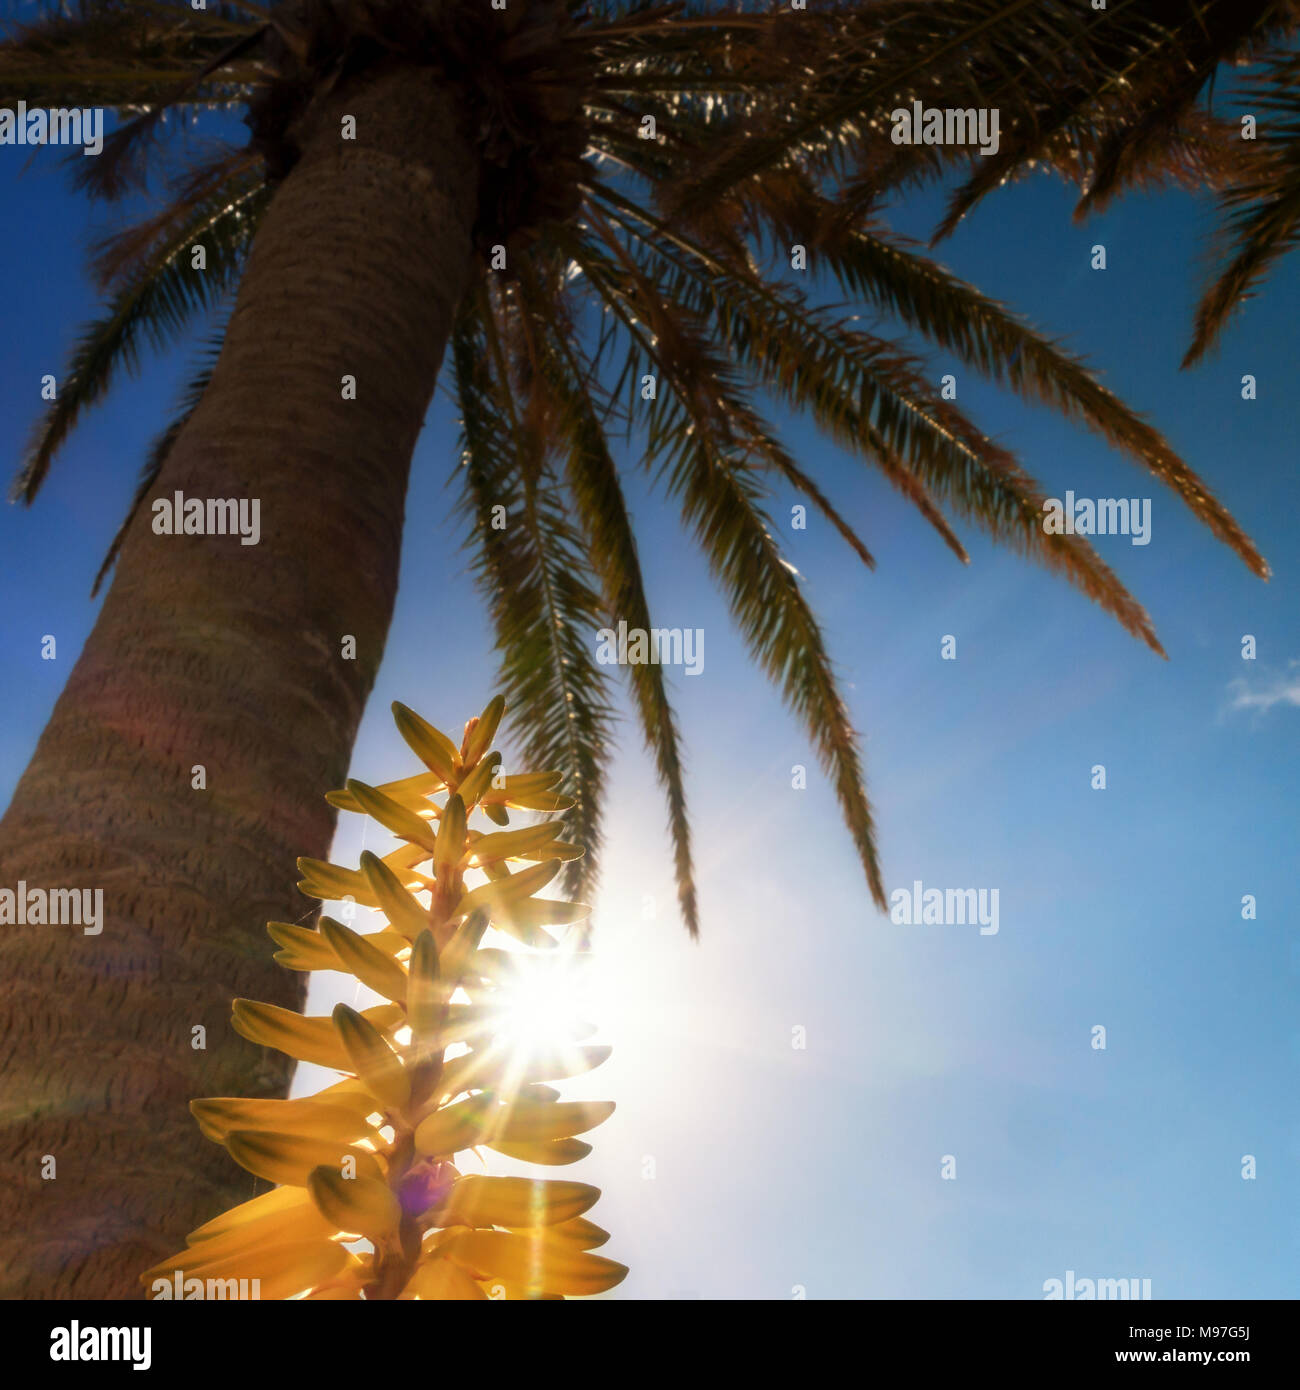 Instagram holiday look - looking up into a palm tree towards the sun through a yellow aloe vera flower - Stock Image